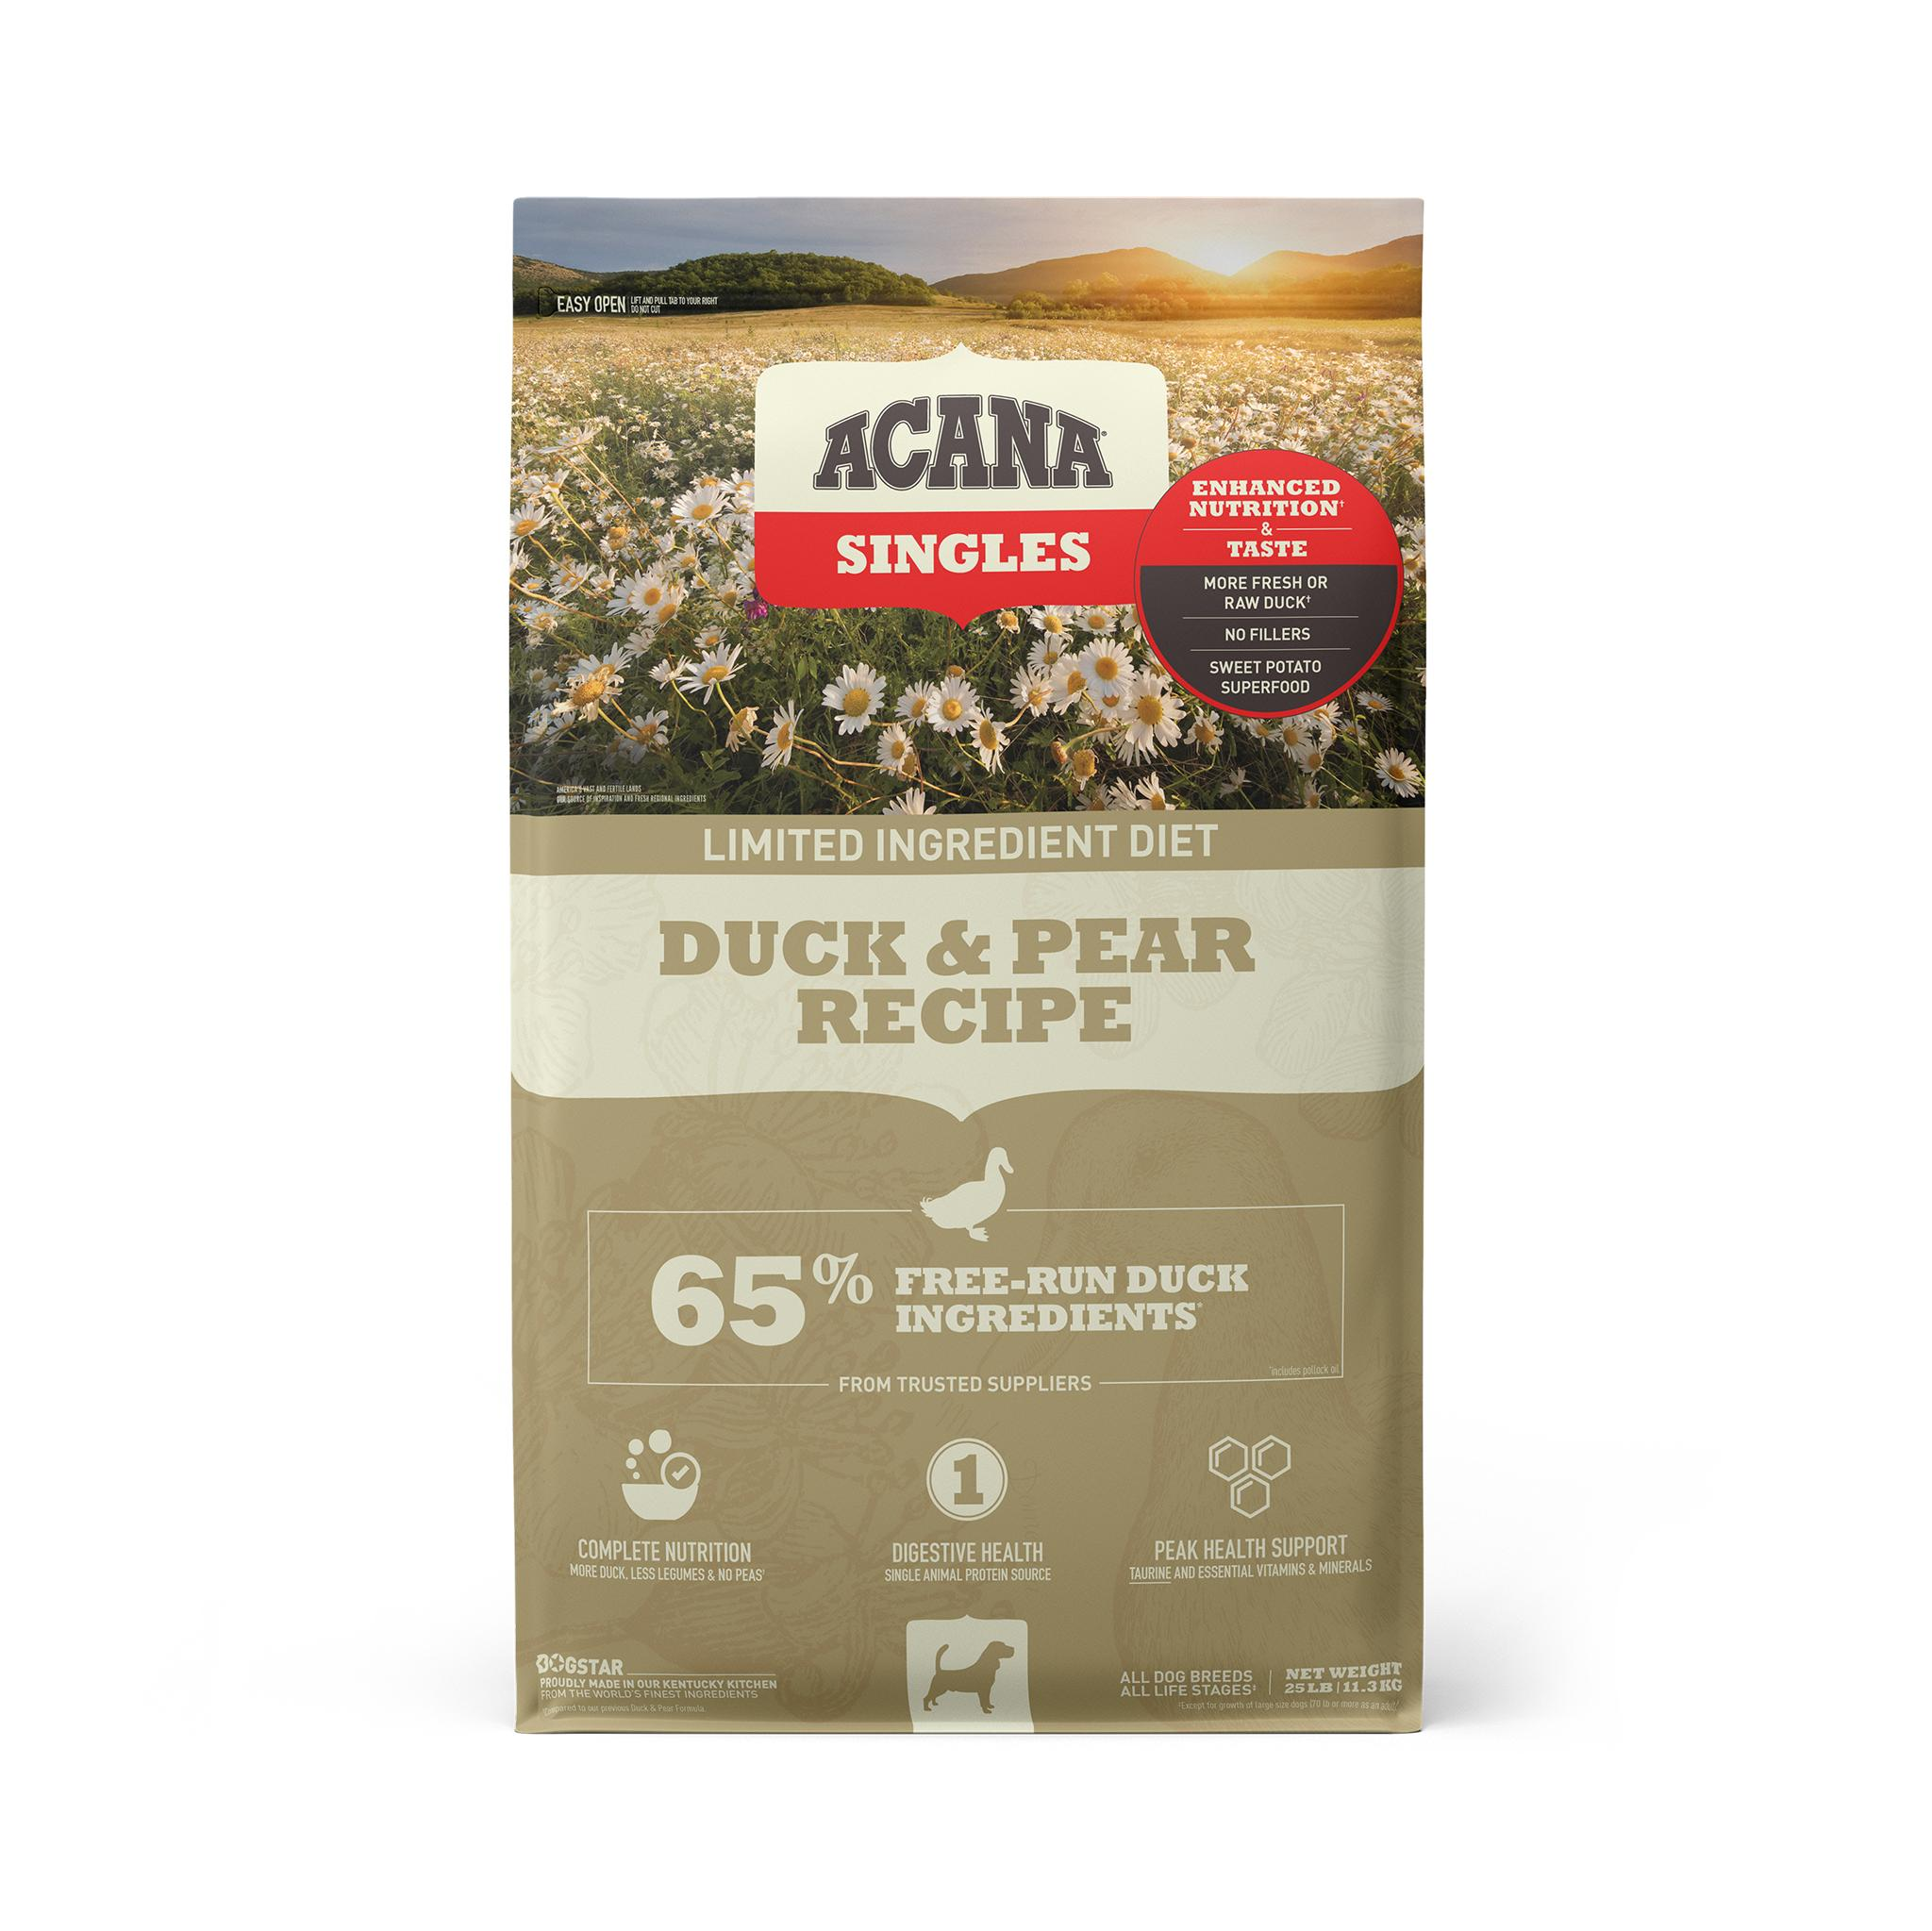 ACANA Singles Limited Ingredient Duck & Pear Grain-Free Dry Dog Food, 25-lb bag